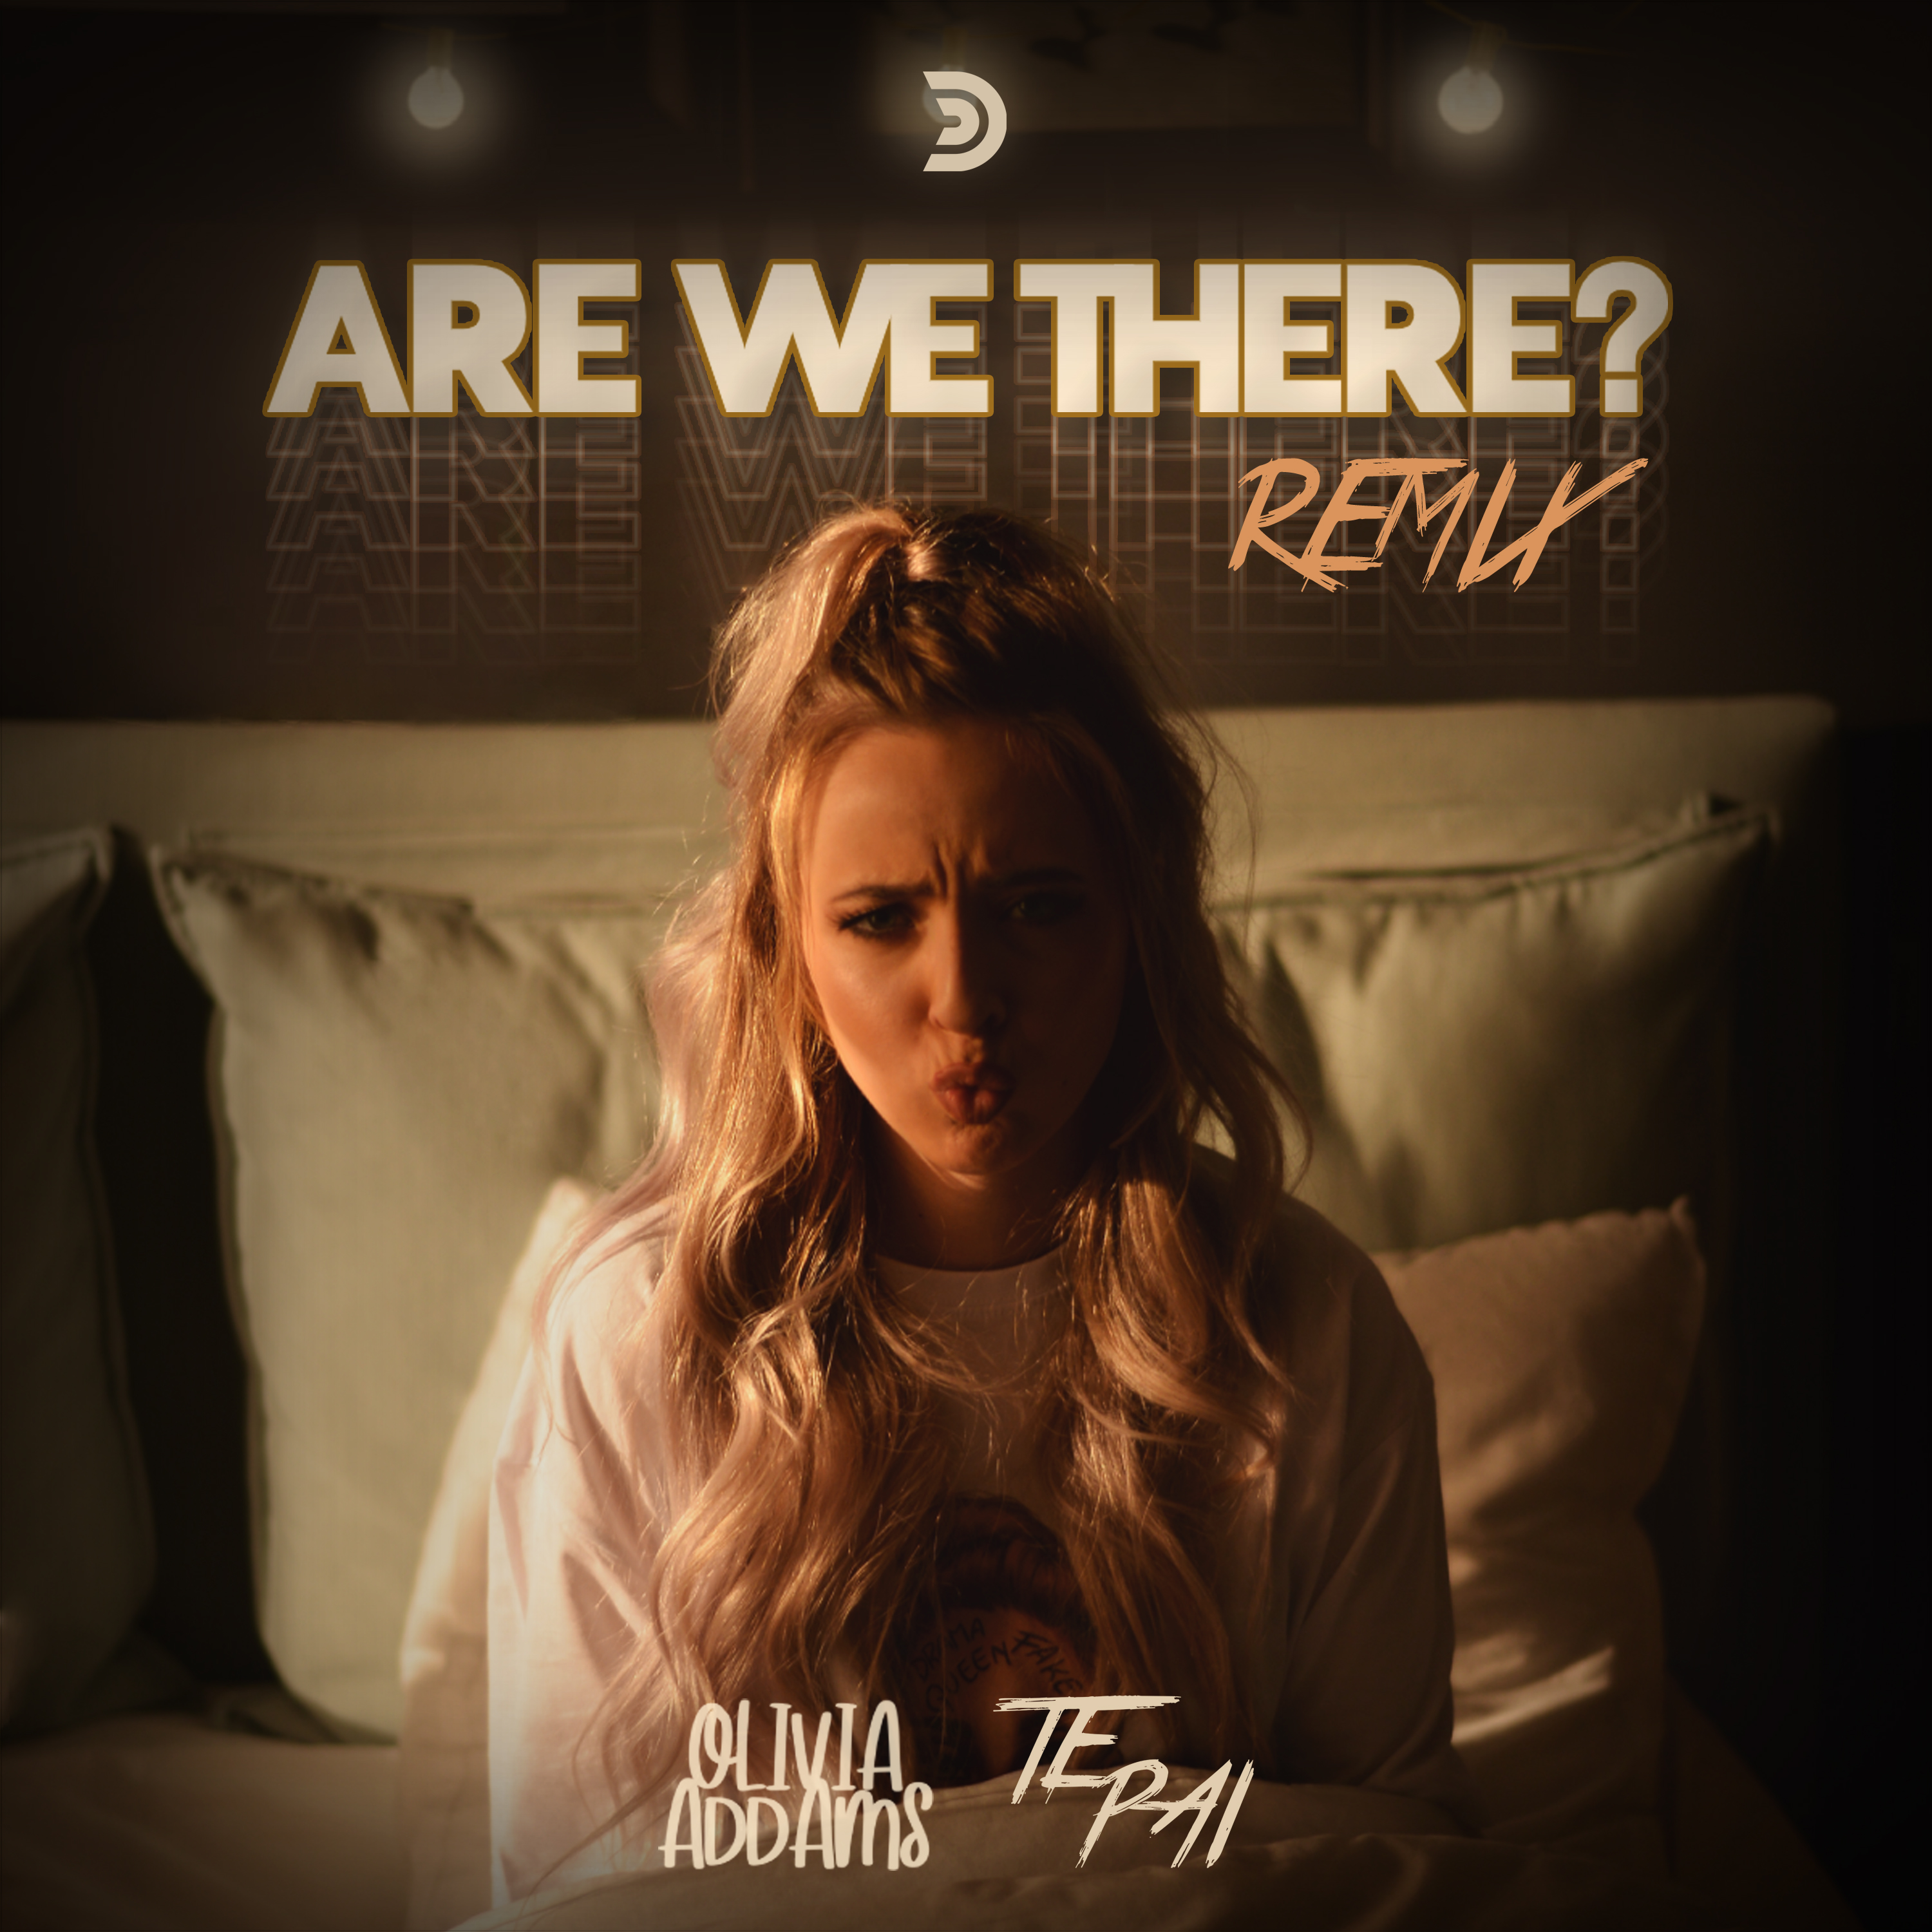 ARE WE THERE? (TE PAI REMIX)